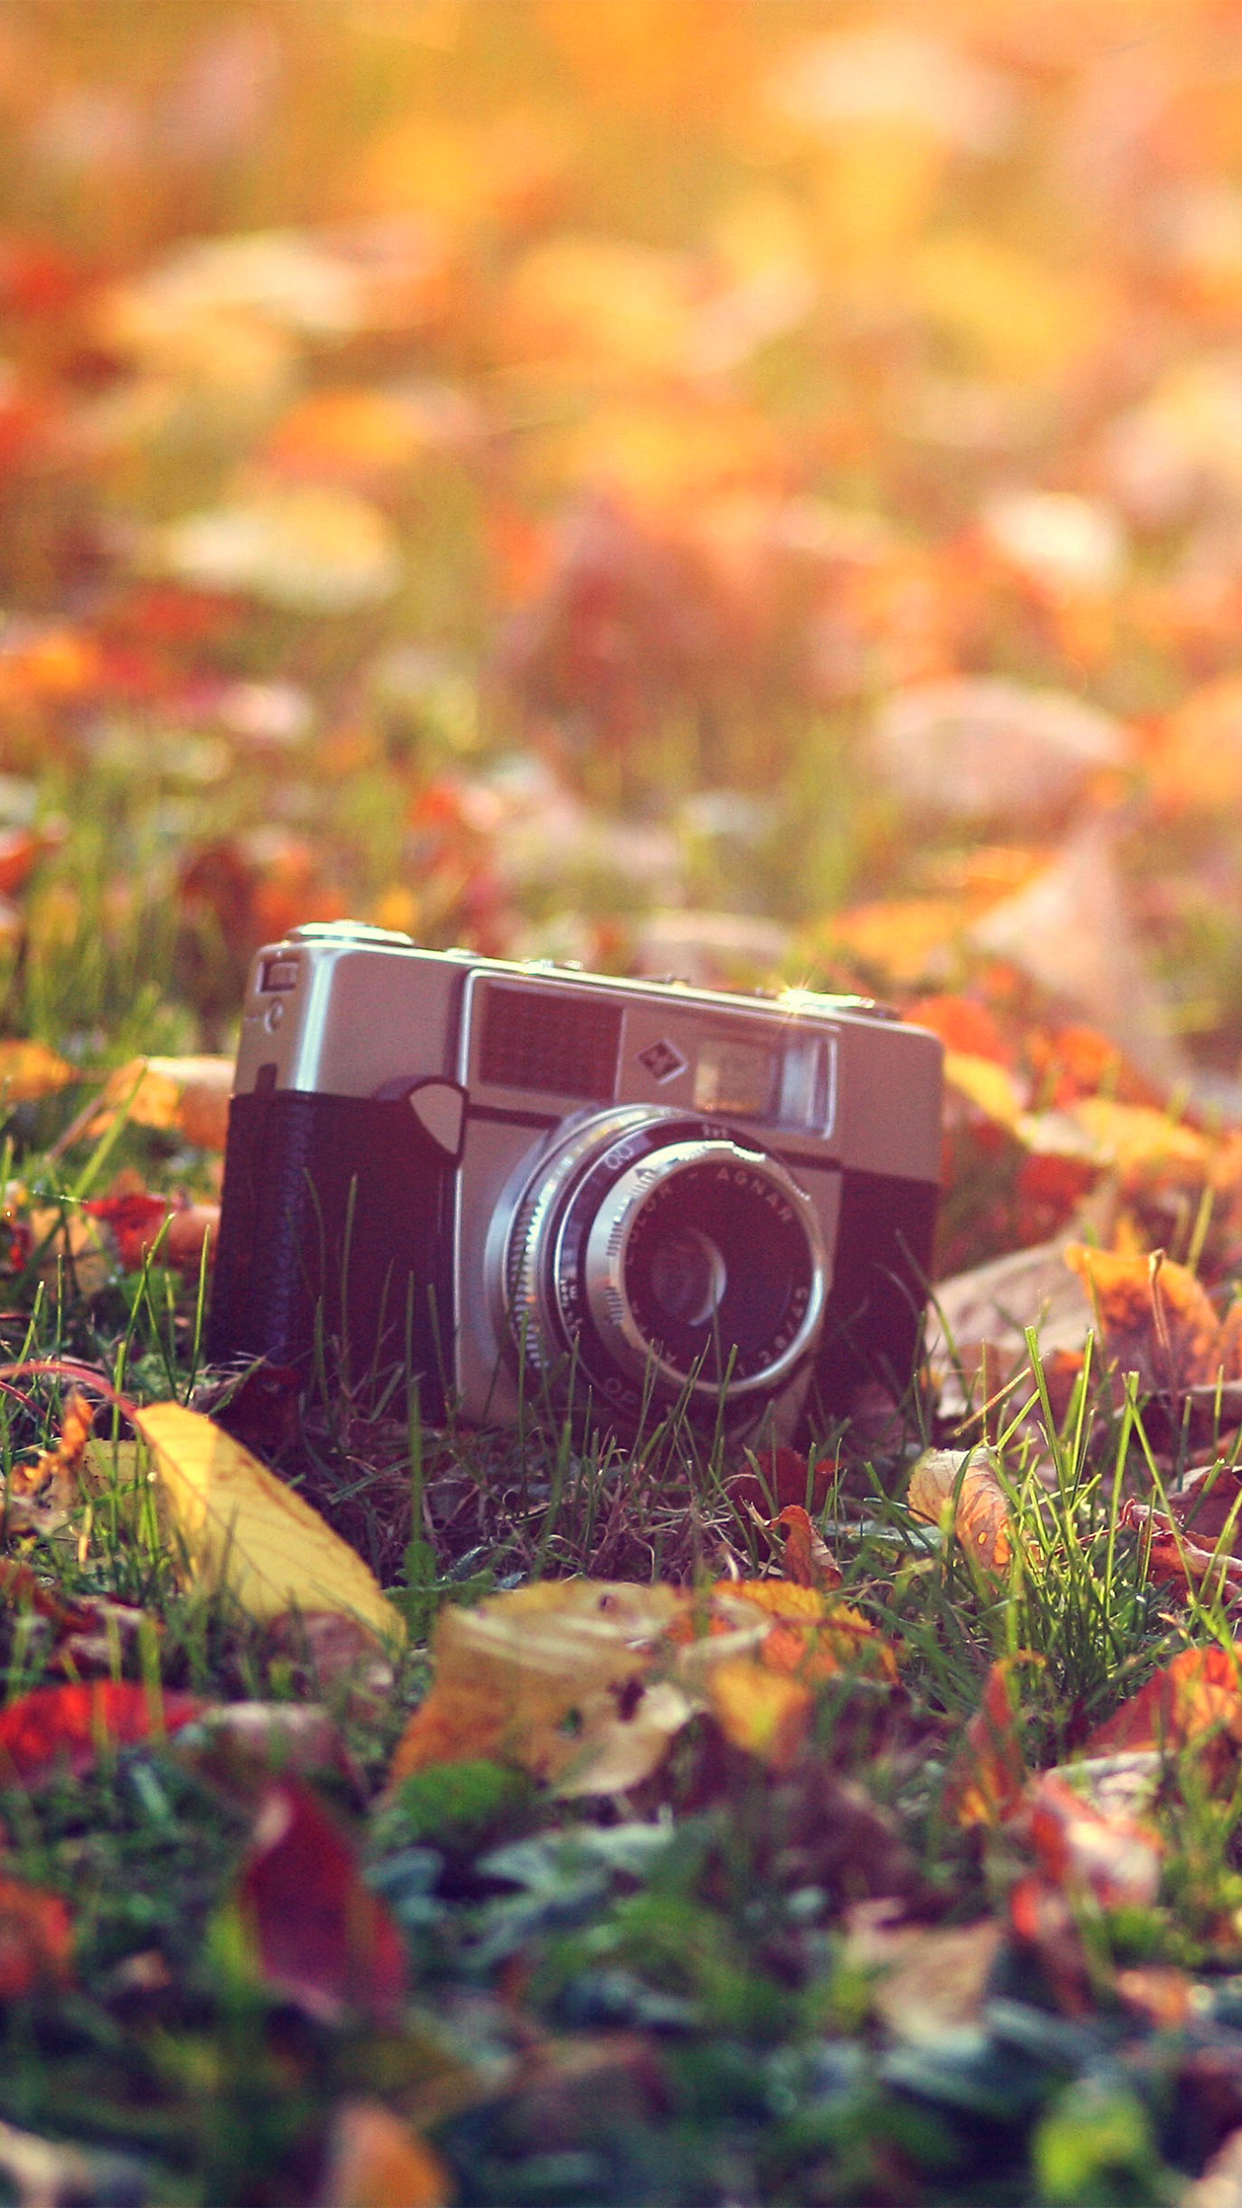 Hipster Fall Wallpaper Vintage Camera Wallpaper For Iphone X 8 7 6 Free